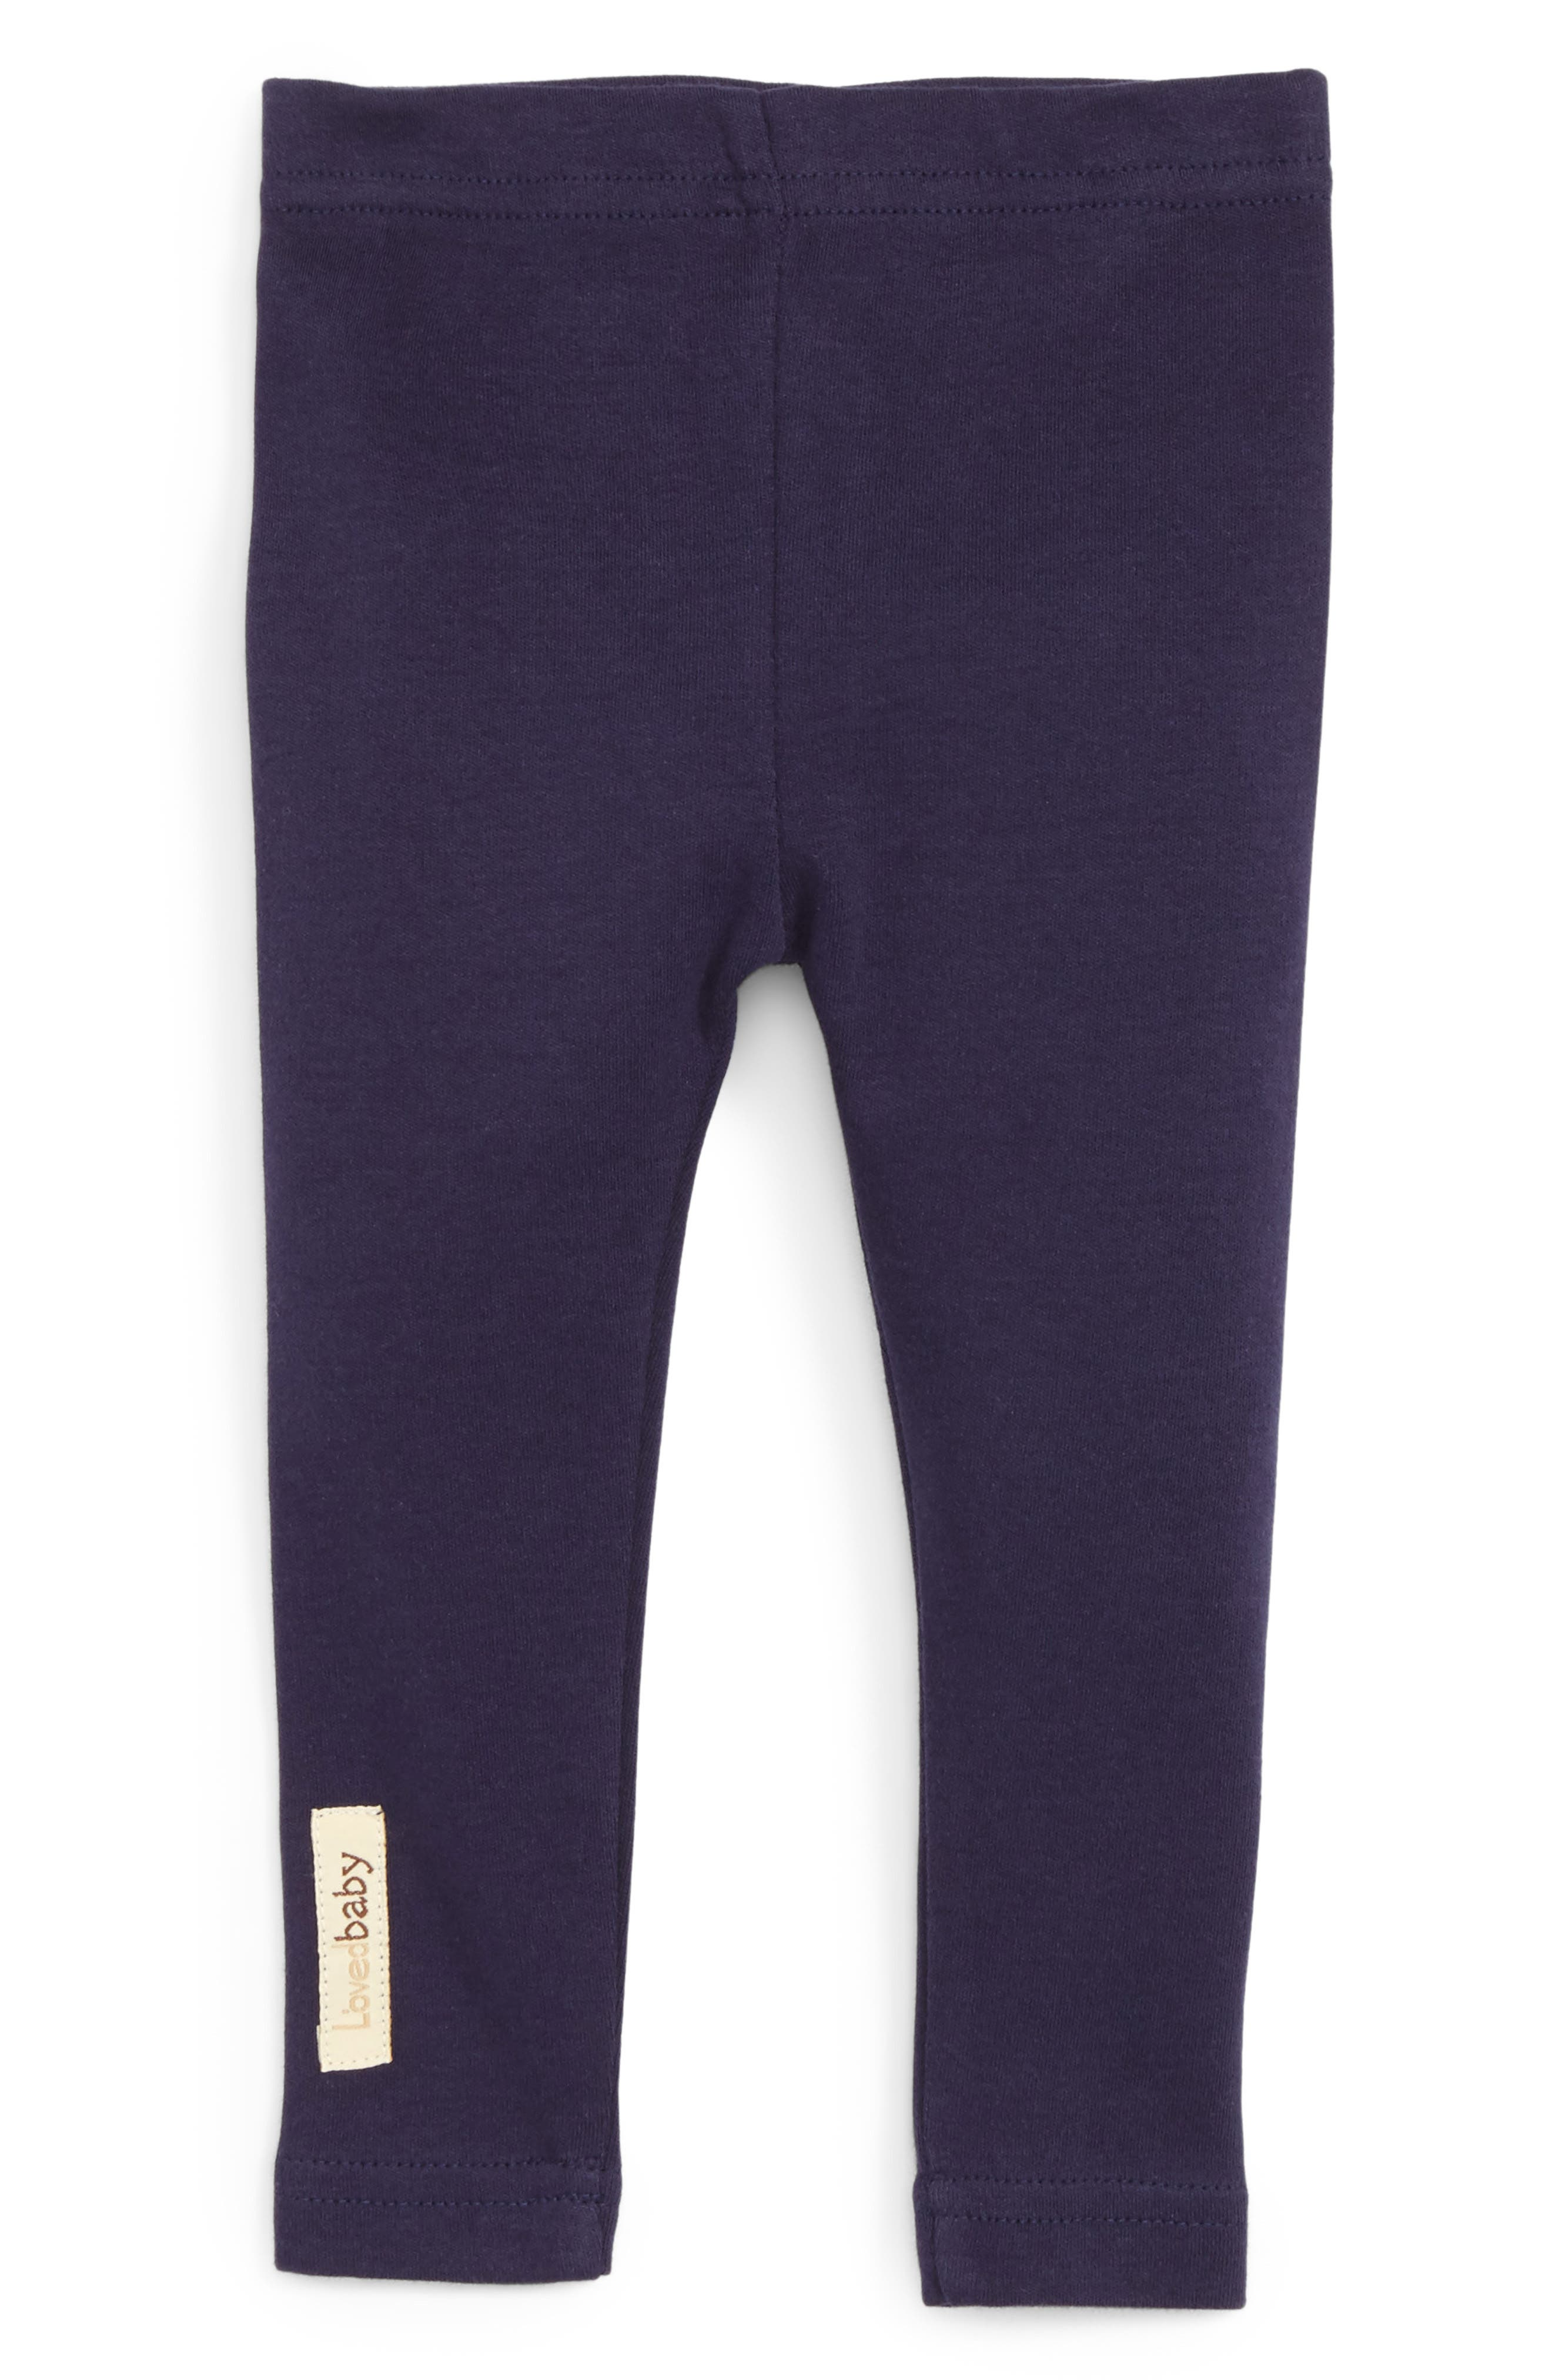 Organic Cotton Pants,                         Main,                         color, Navy